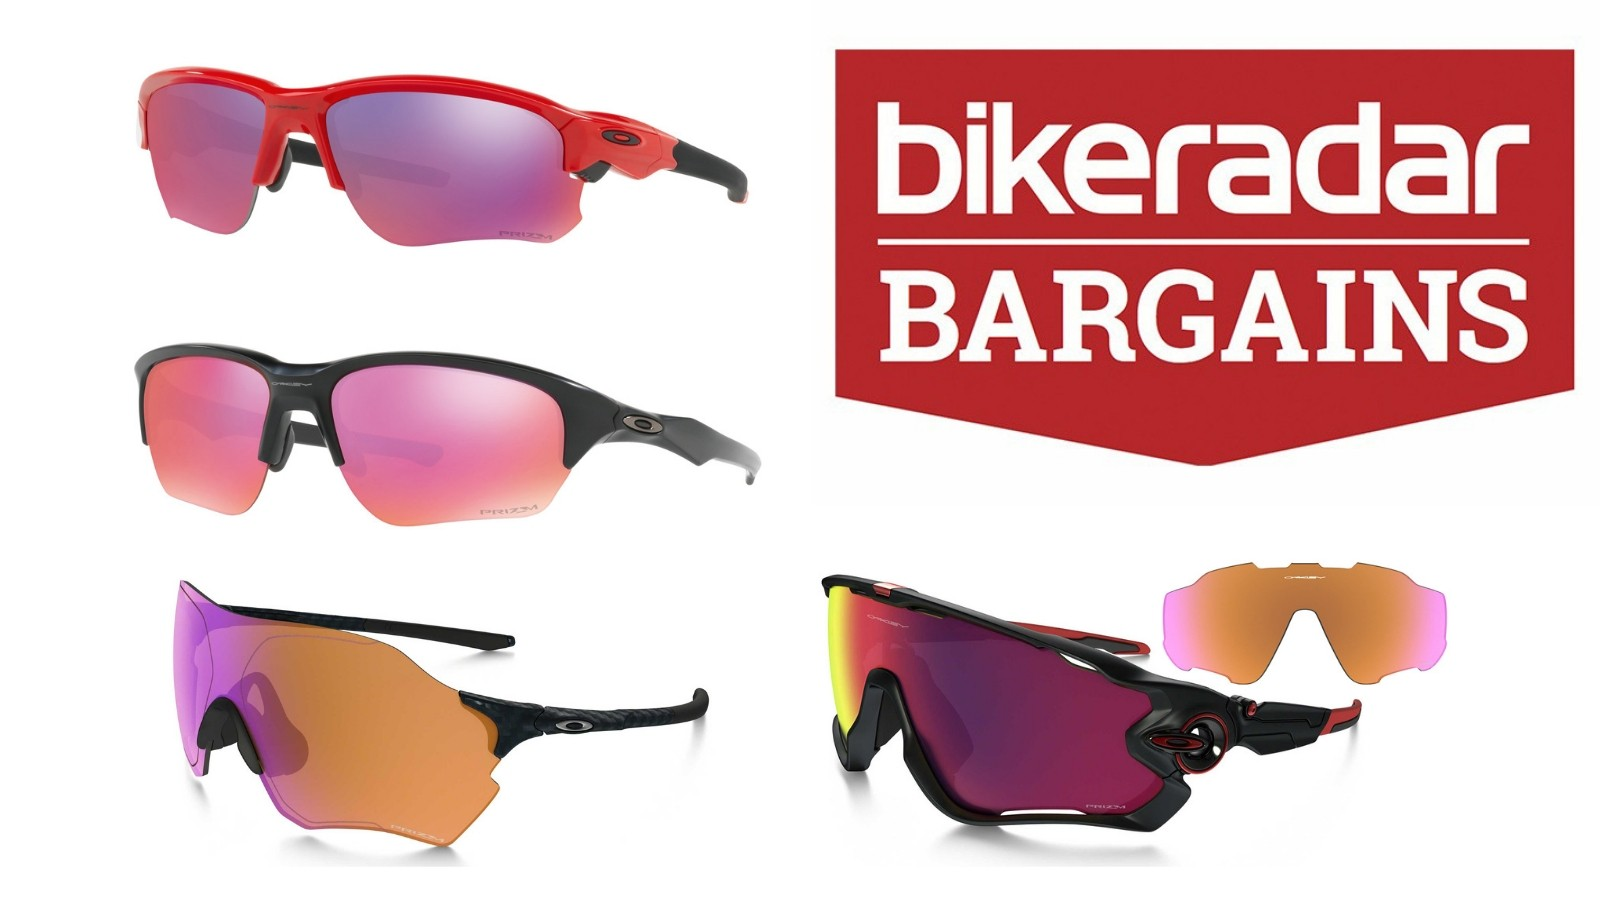 Save 50% on selected Oakley sunglasses at Evans Cycles